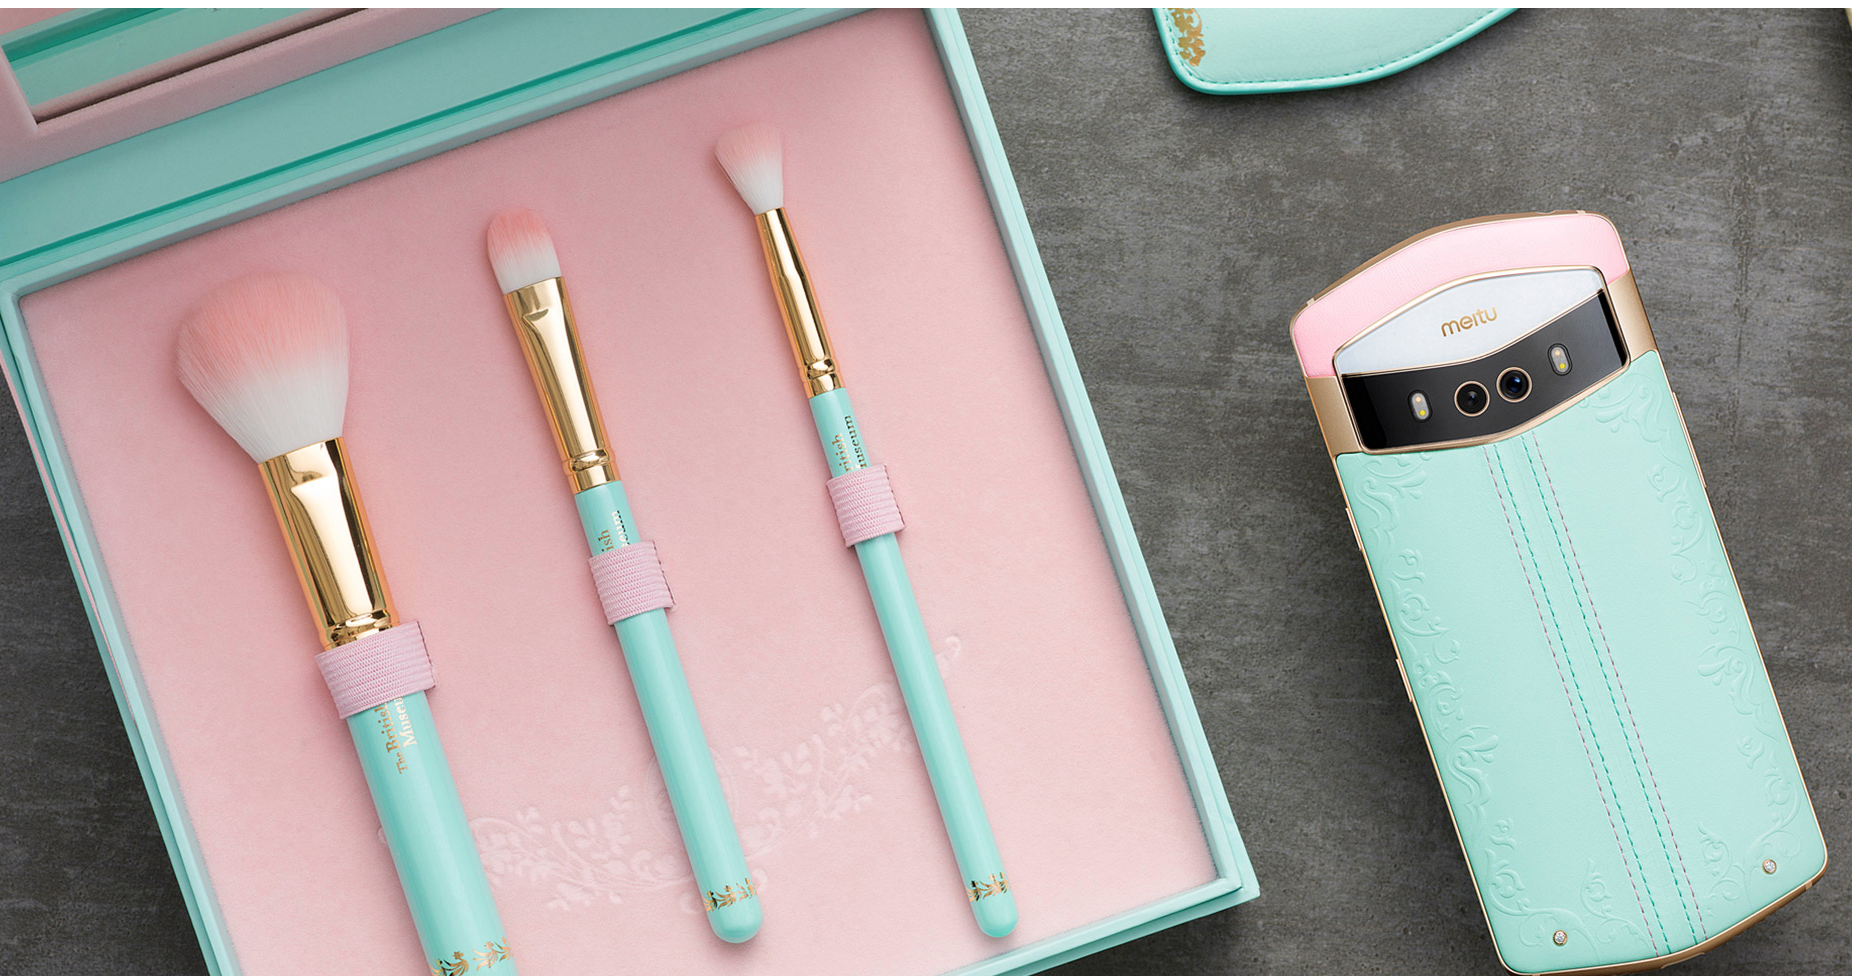 A Meitu V6 phone model, which is sold with a set of makeup brushes.